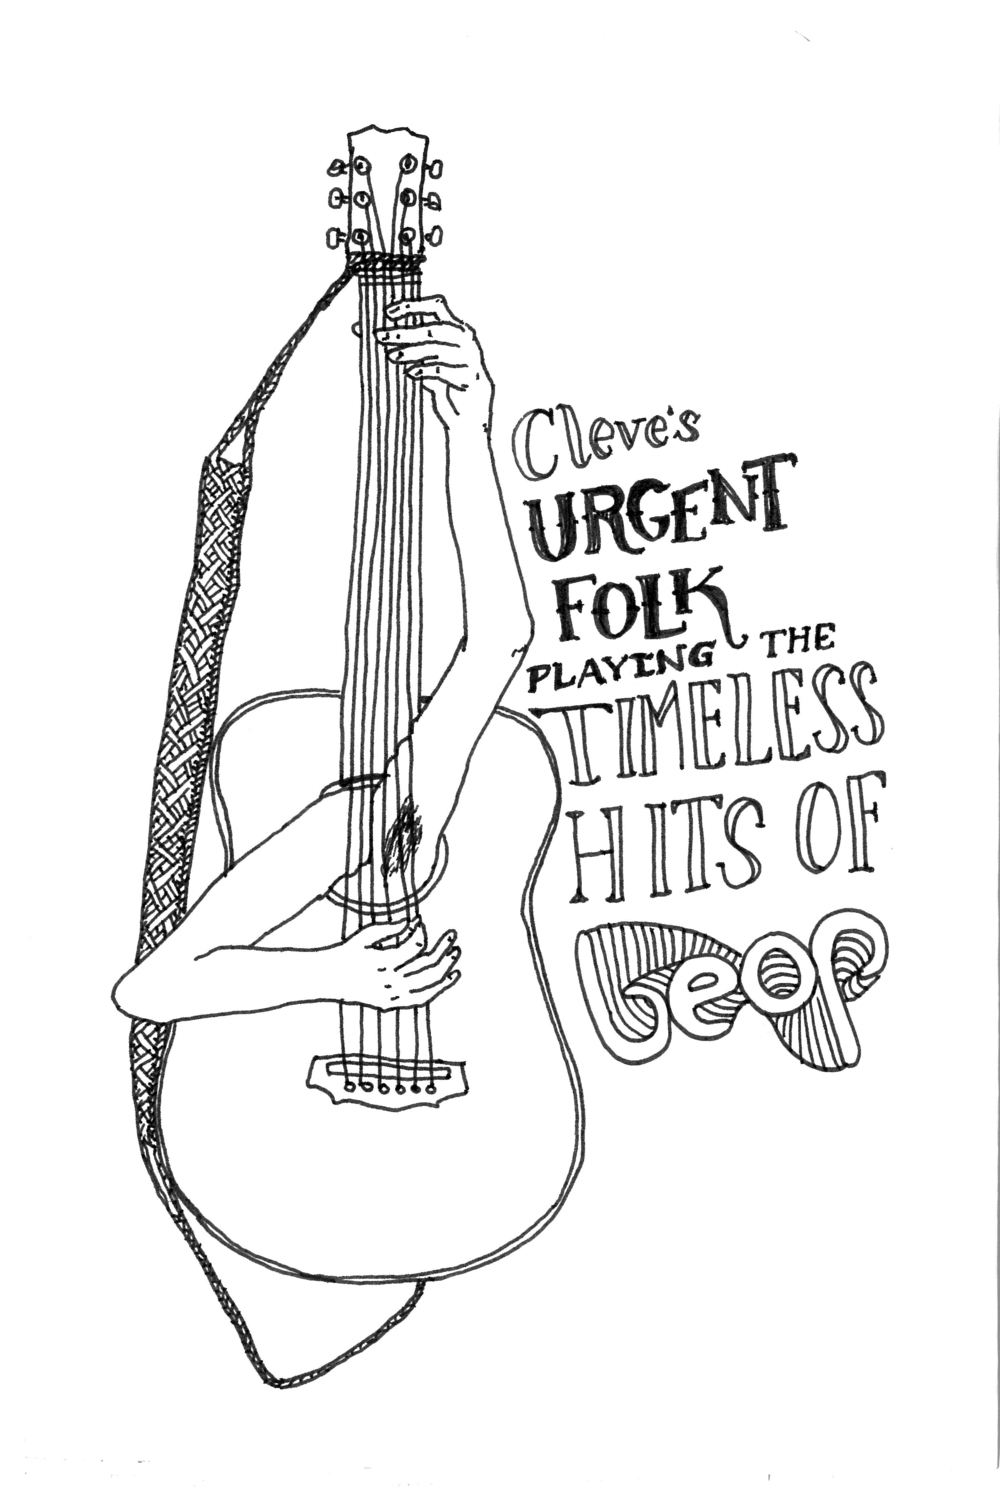 Cleve's Urgent-Folk. Illustration by Mariona Wessela-Comas.